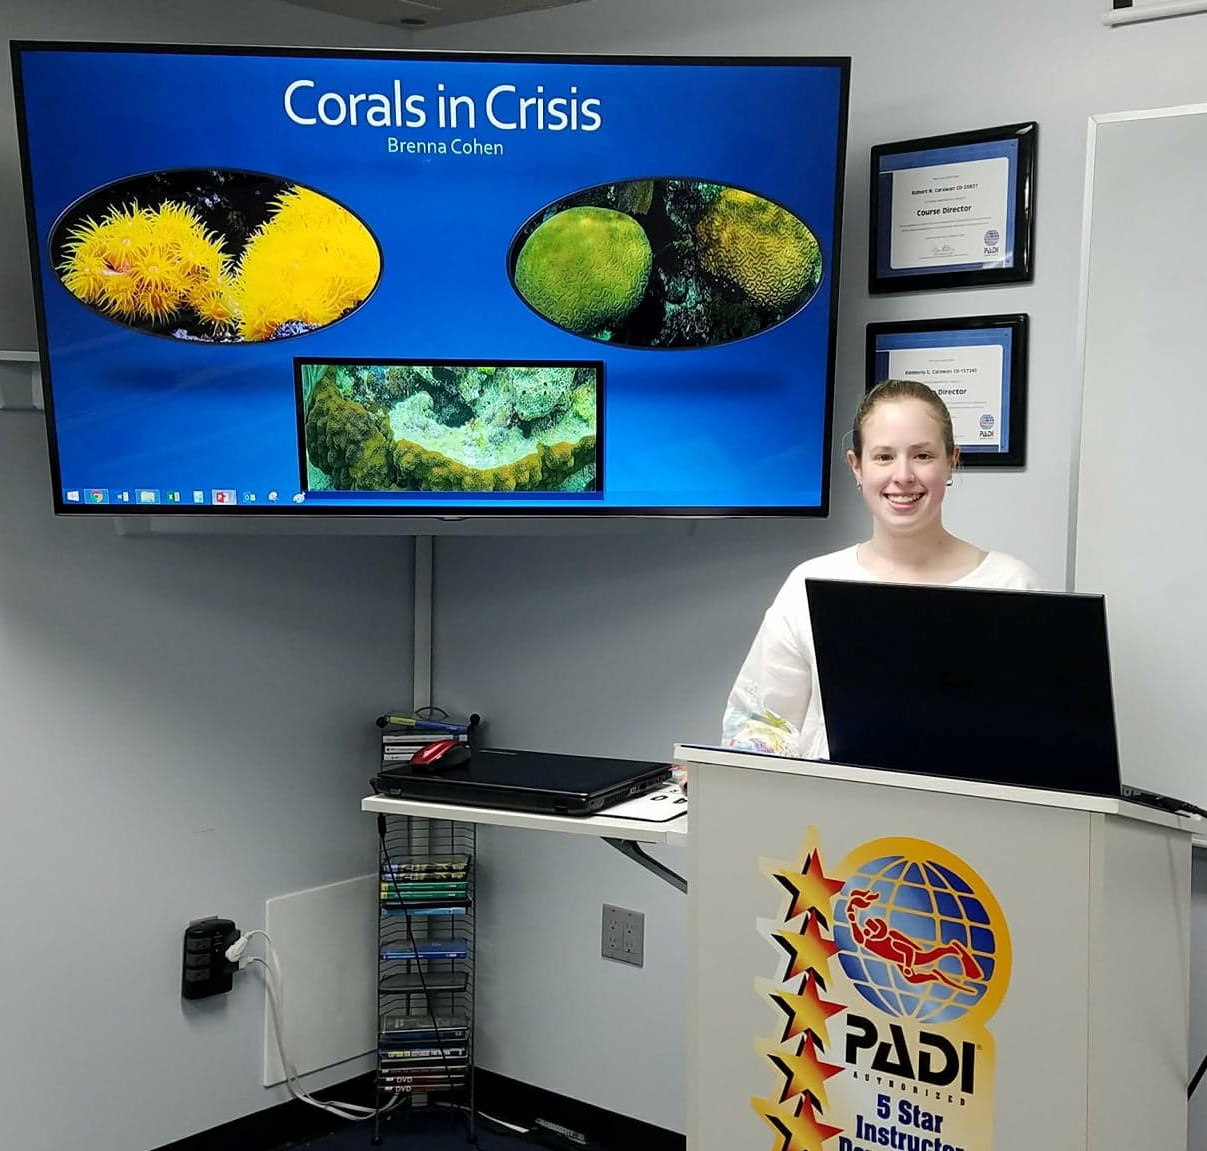 Brenna Cohen taught workshop participants about coral reefs, their global importance, and the threats they are currently facing.